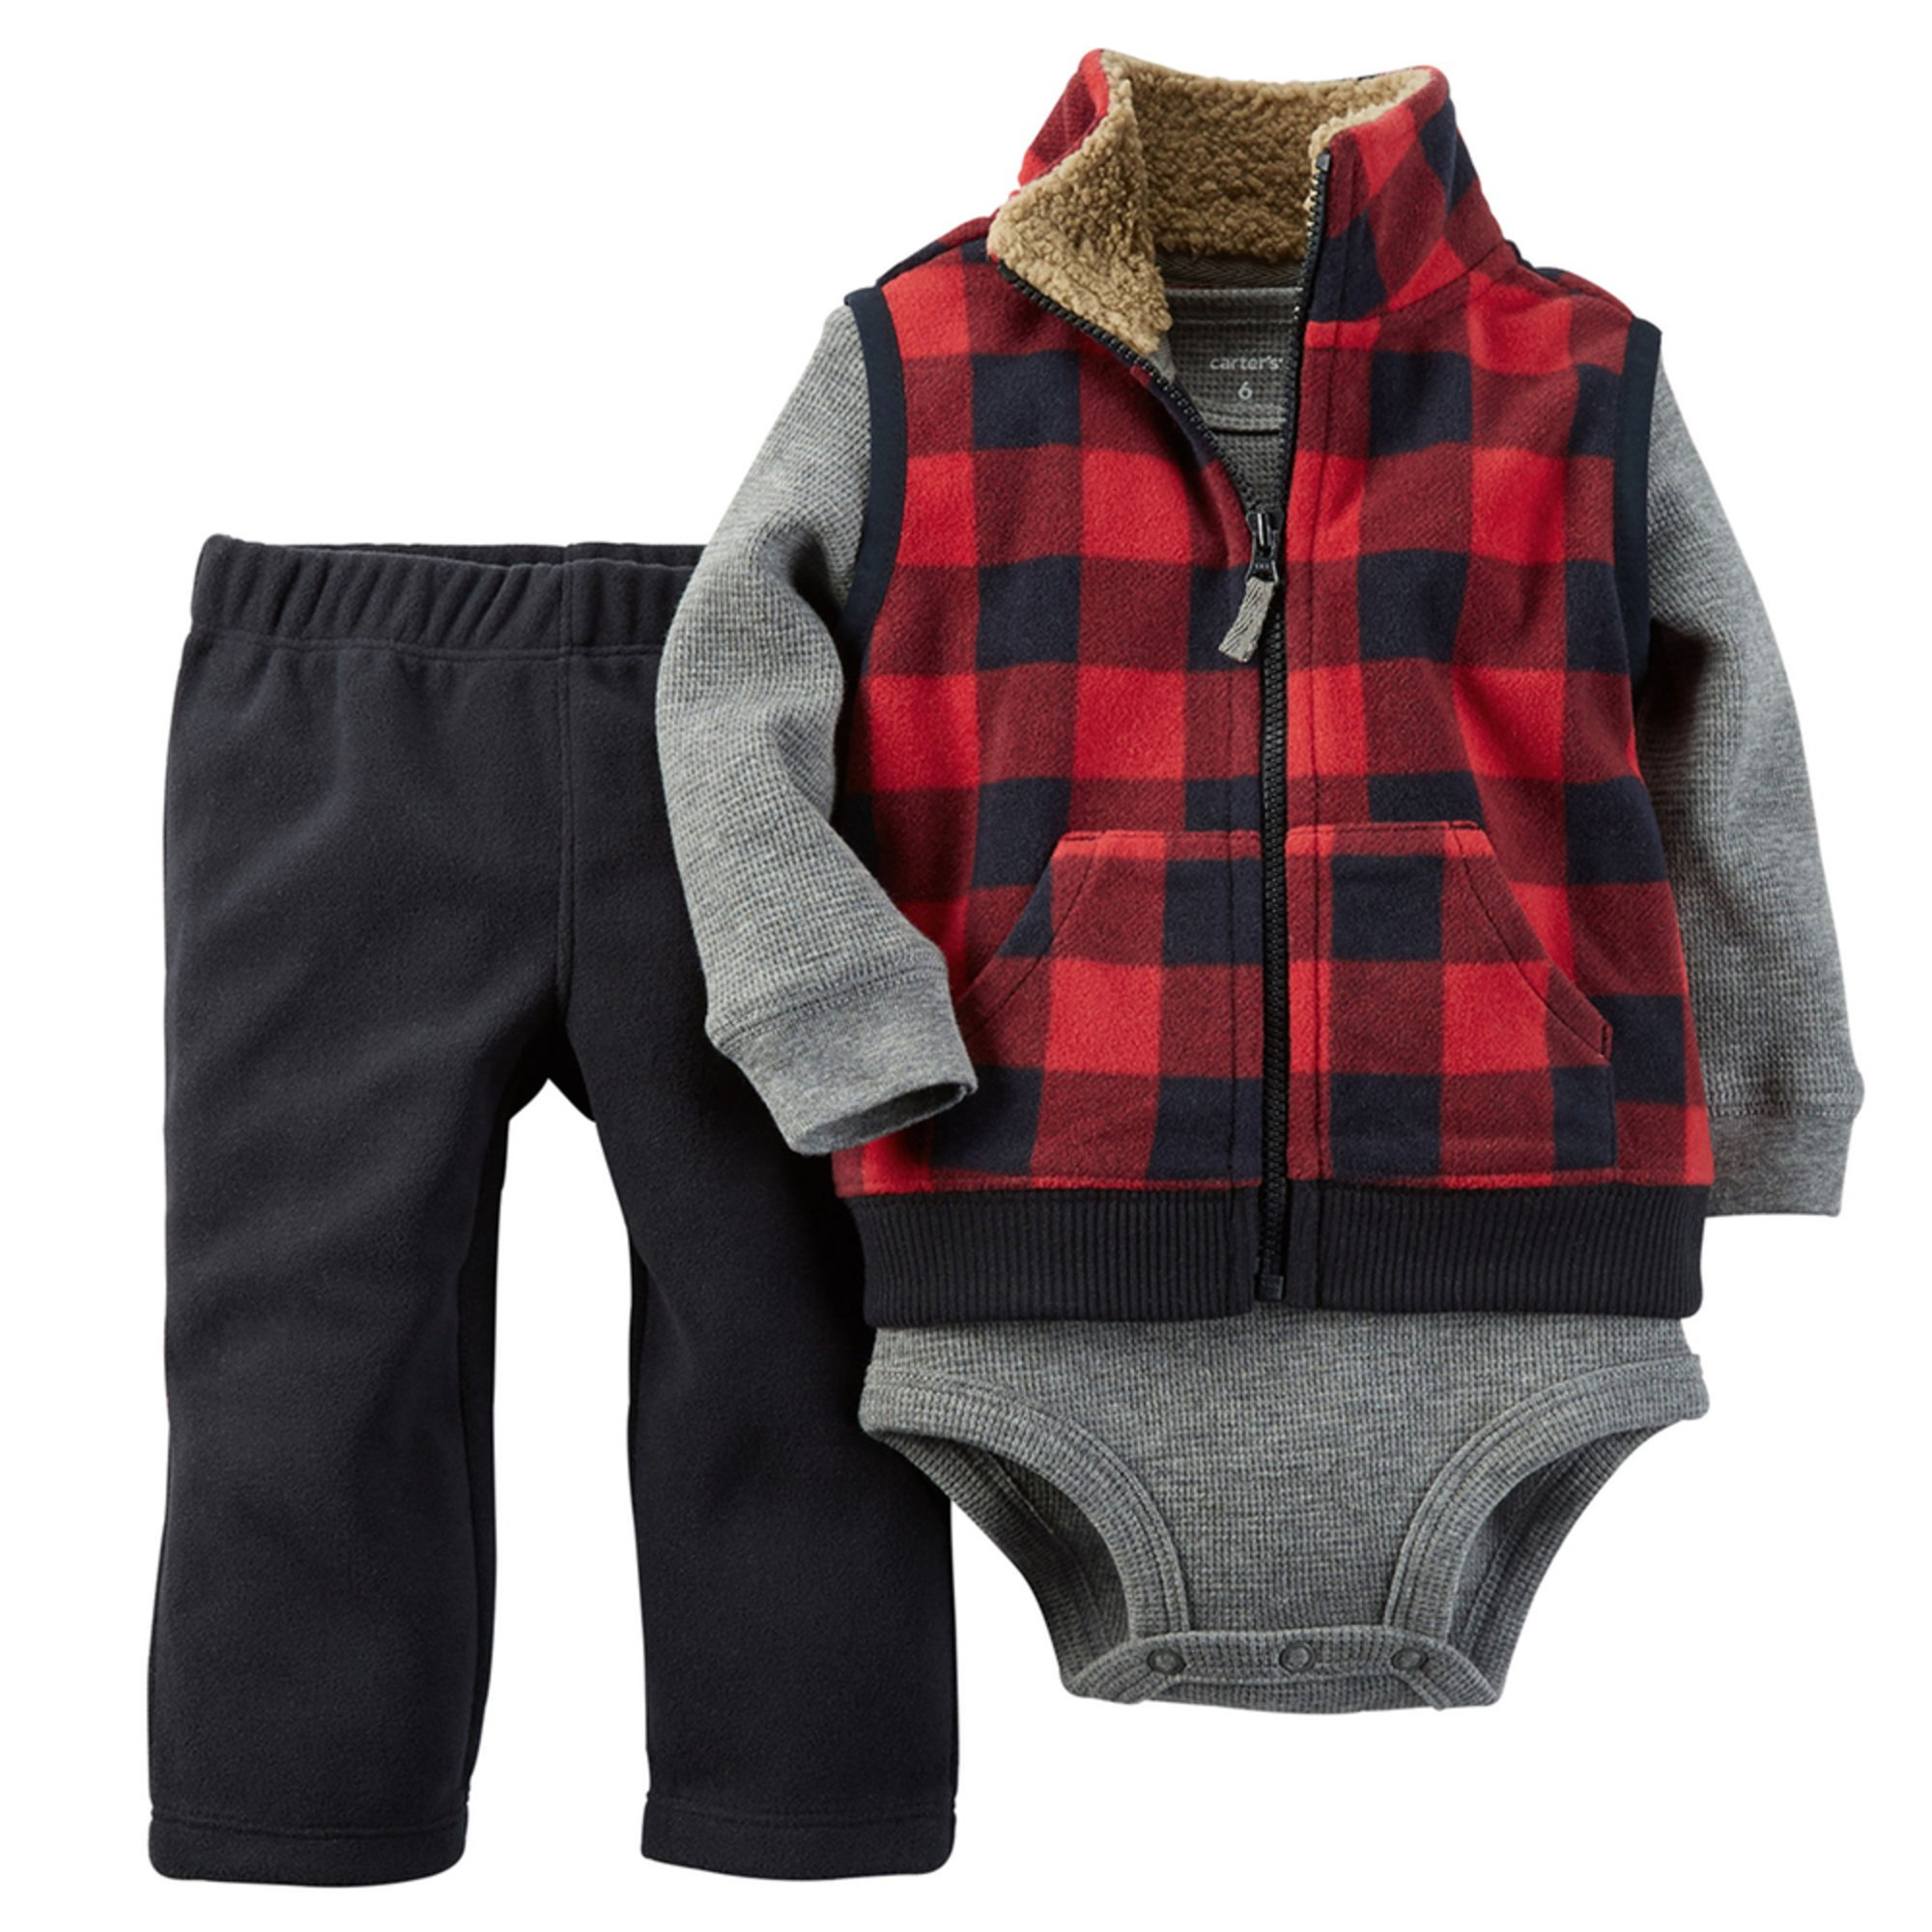 Overview: Vest: Sleeveless. Zipper from hem to neck. Small embroidered logo on upper left front. Sherpa lined collar. Fleece plaid. Graphic Tee: Raglan tee.